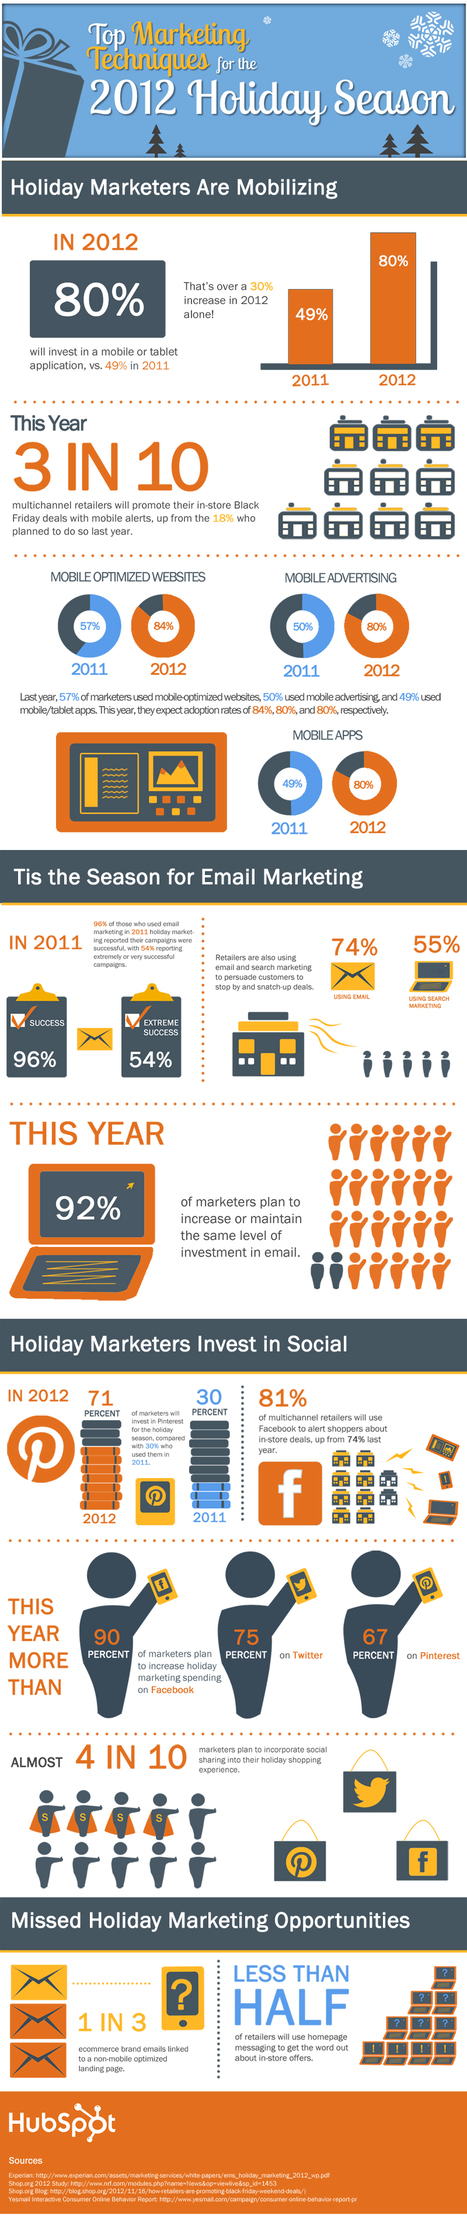 How Marketers Are Gearing Up for the 2012 Holiday Season [INFOGRAPHIC] | AtDotCom Social media | Scoop.it